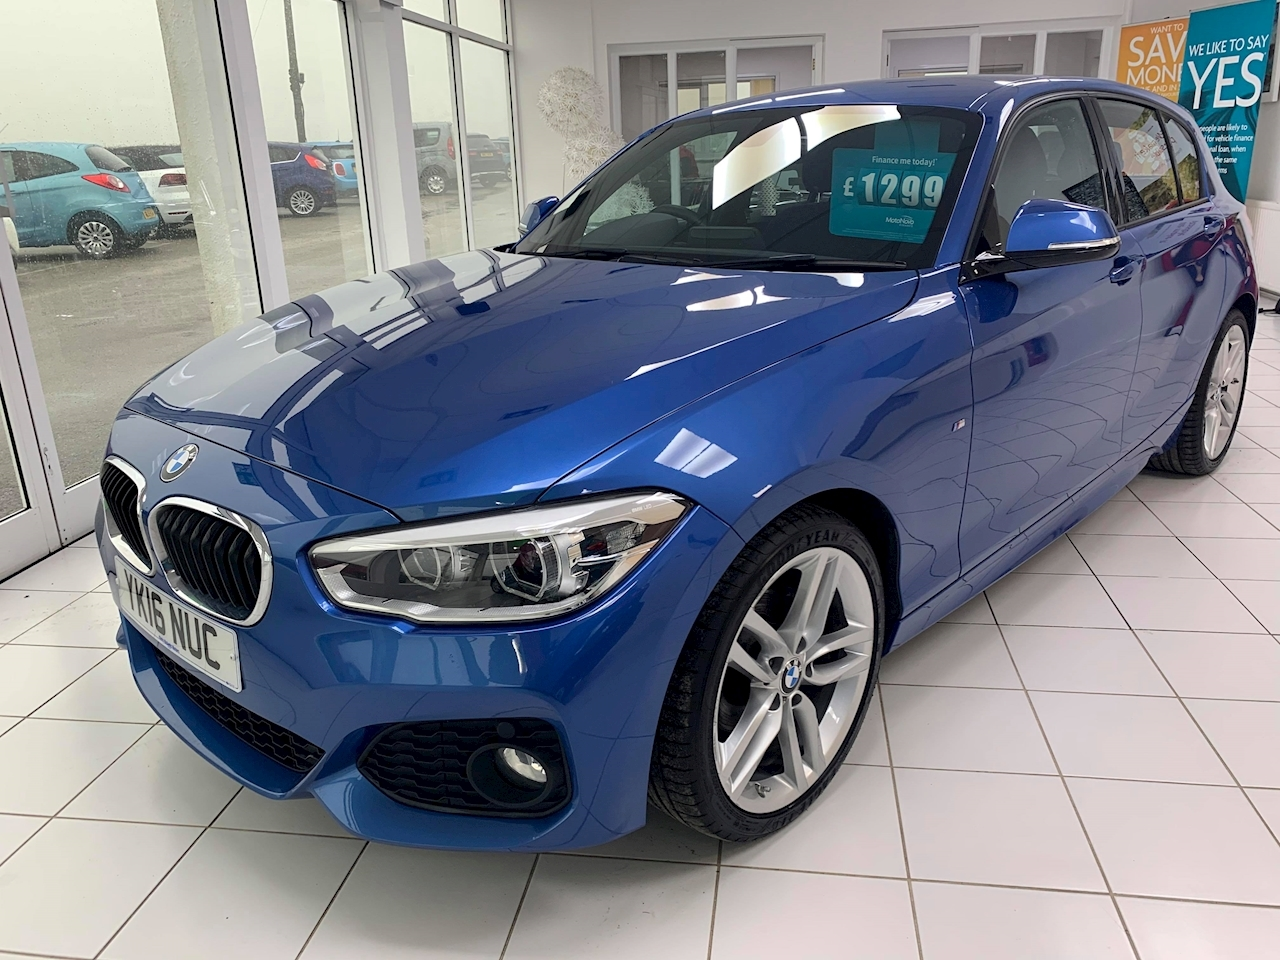 BMW 1 Series 116D M Sport Hatchback 1.5 Manual Diesel